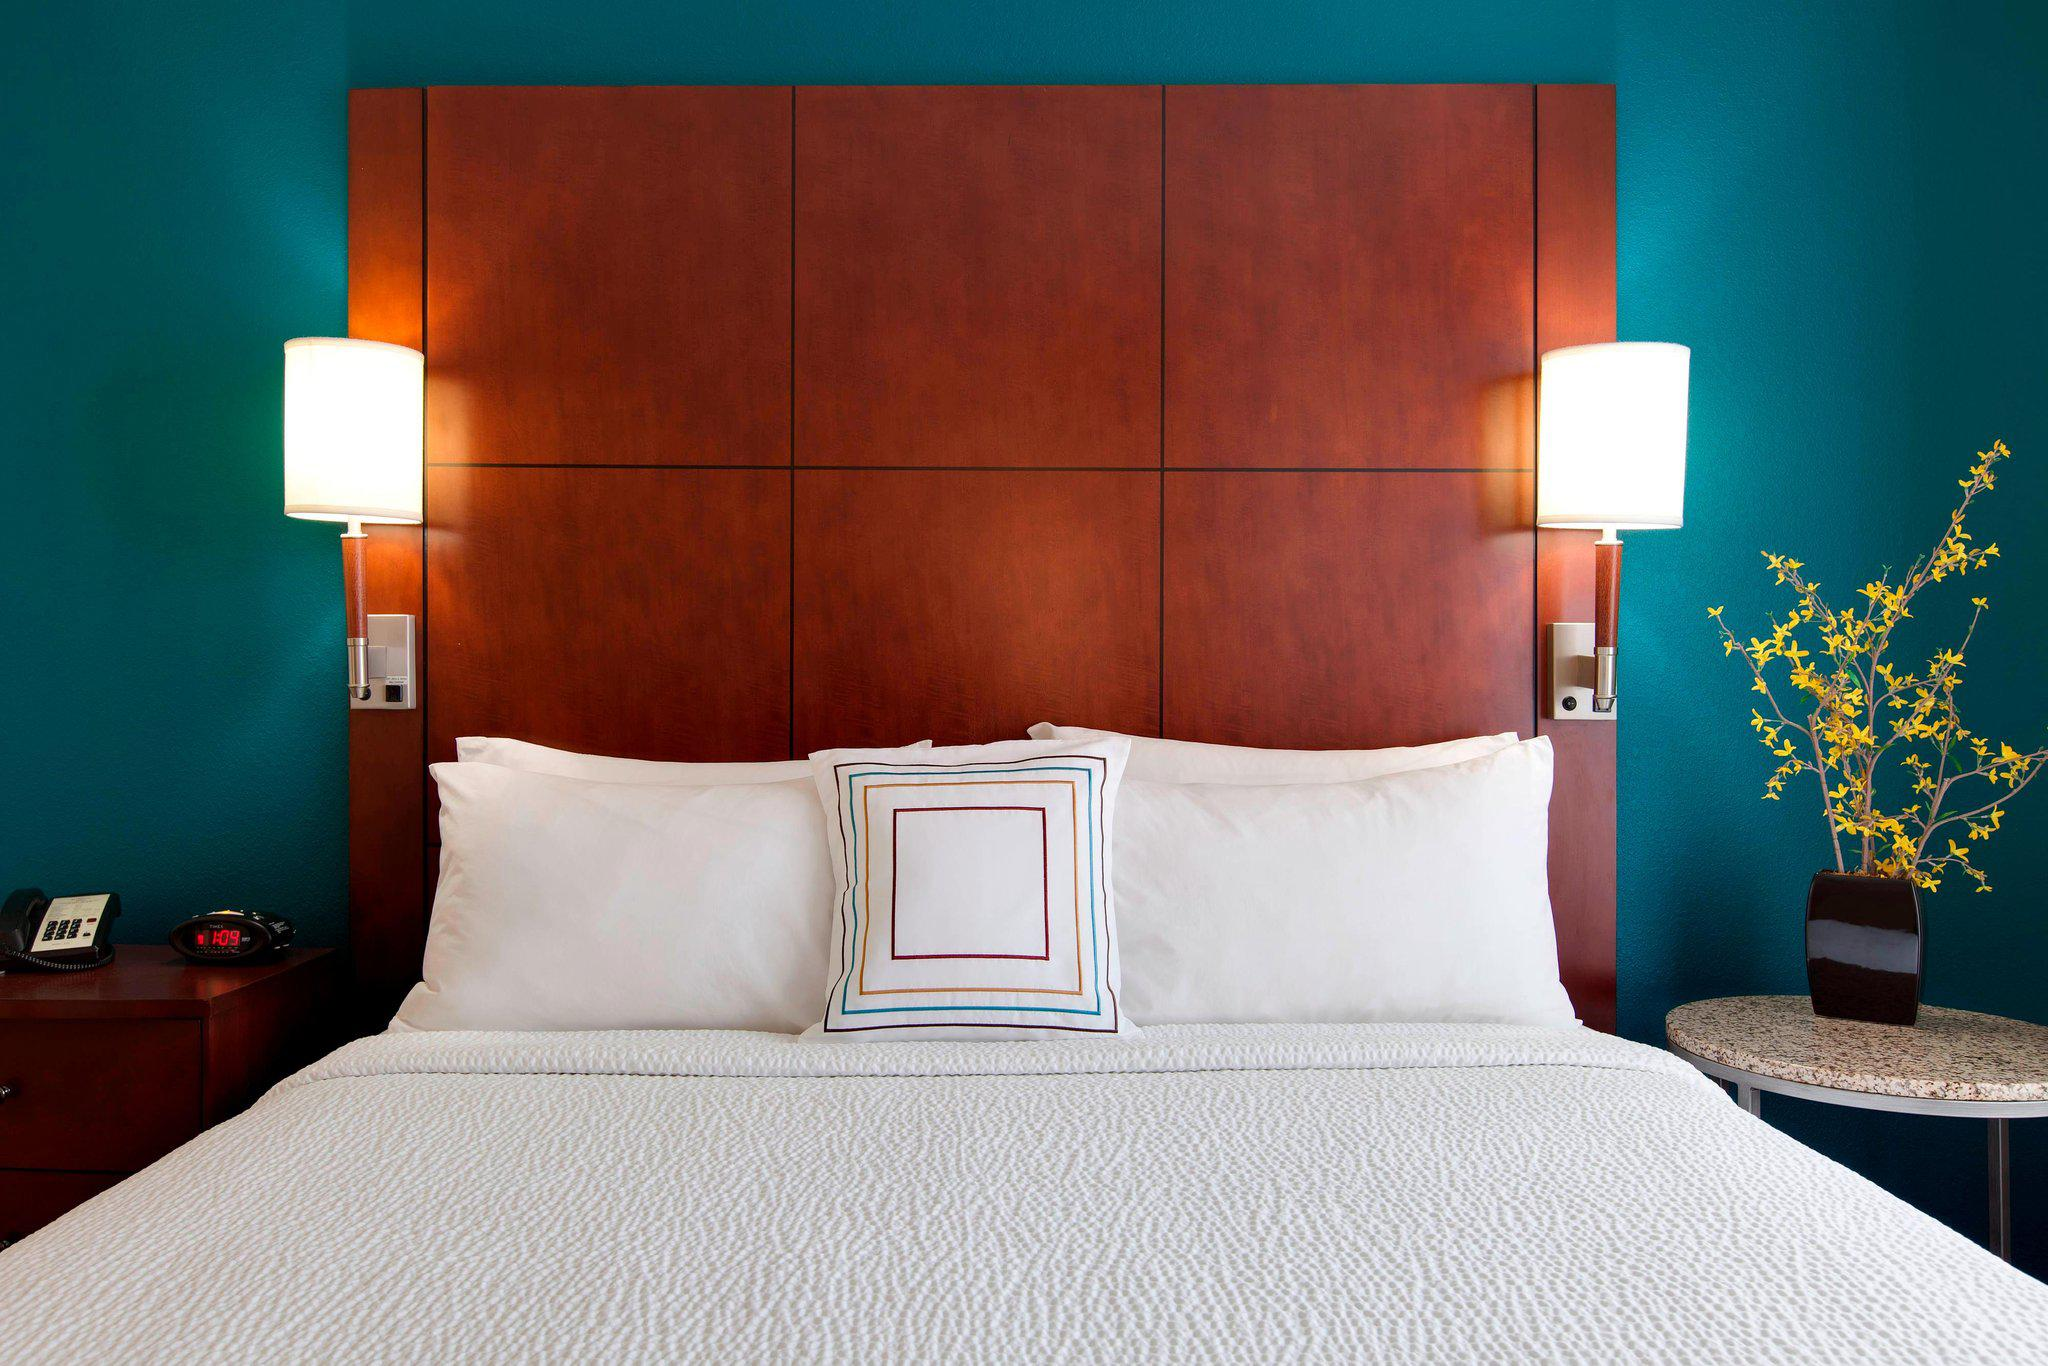 Residence Inn by Marriott Chicago Midway Airport - OPEN